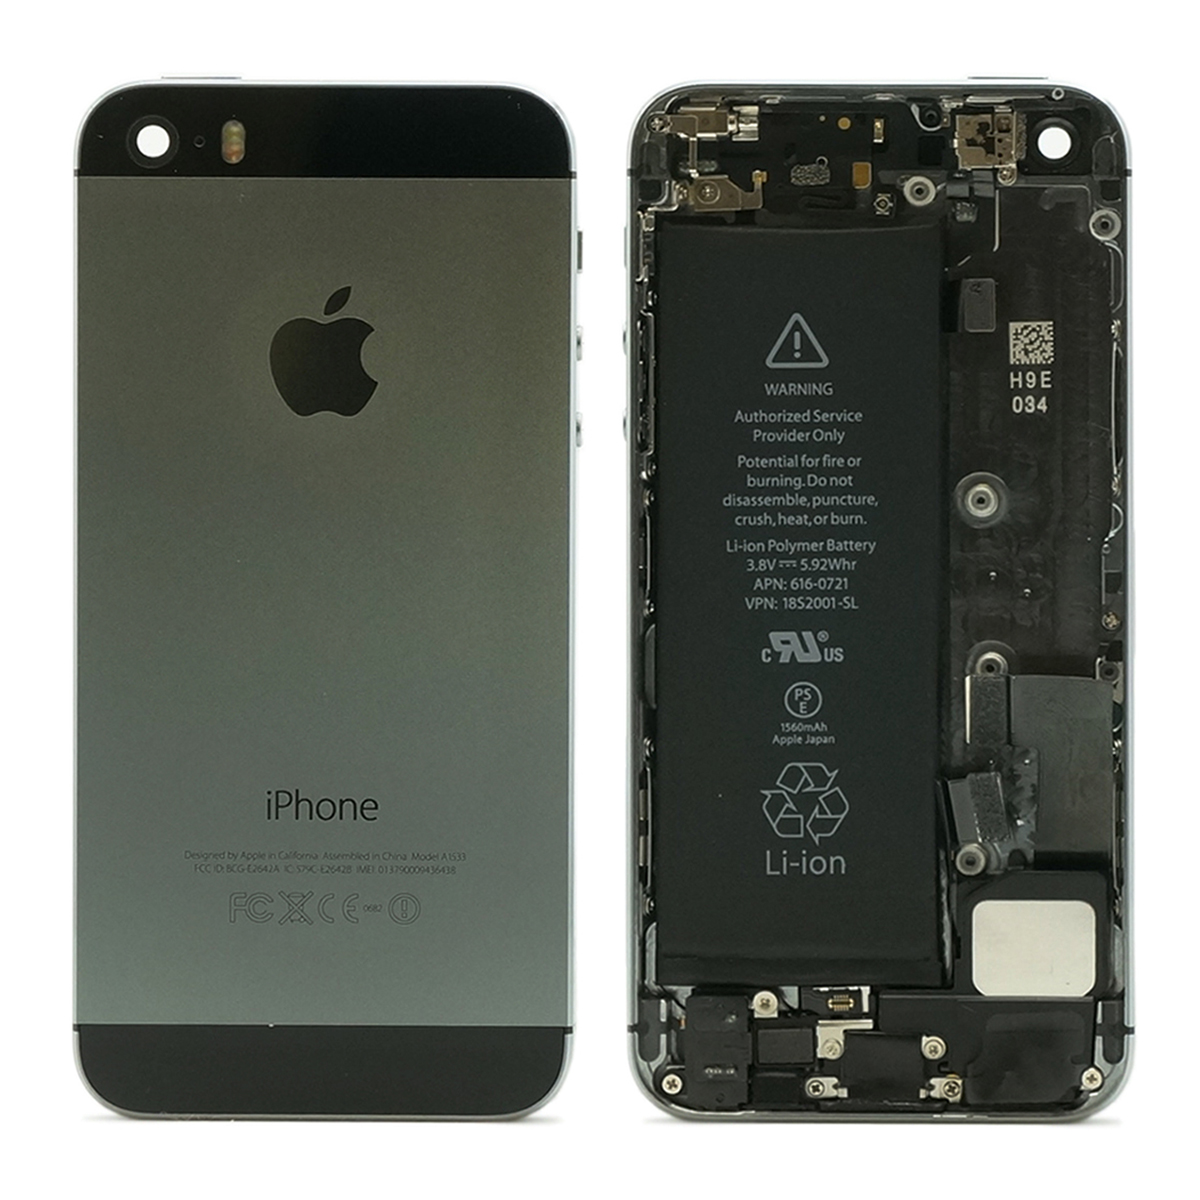 refurbished original apple iphone 5s housing assembly. Black Bedroom Furniture Sets. Home Design Ideas